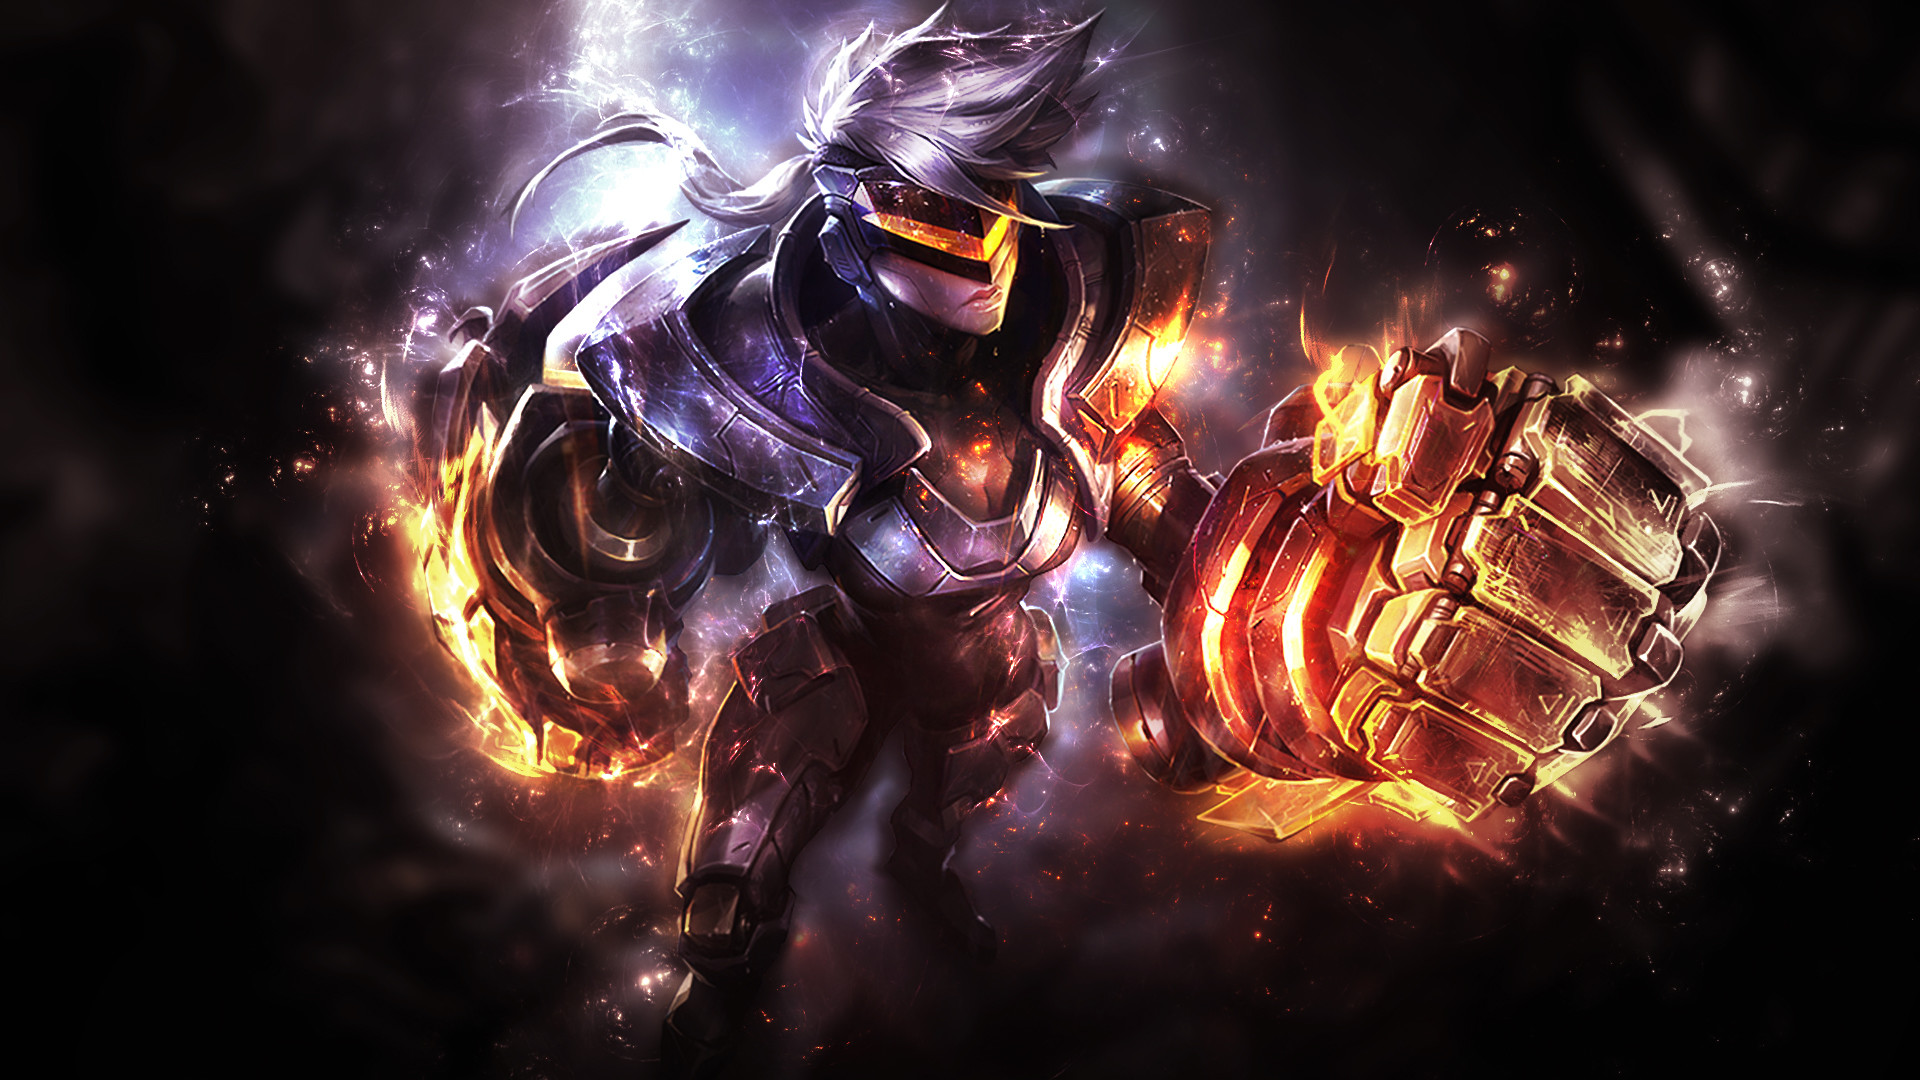 Entei Wallpaper 72 Images 1920x1080 Riven And Yasuo